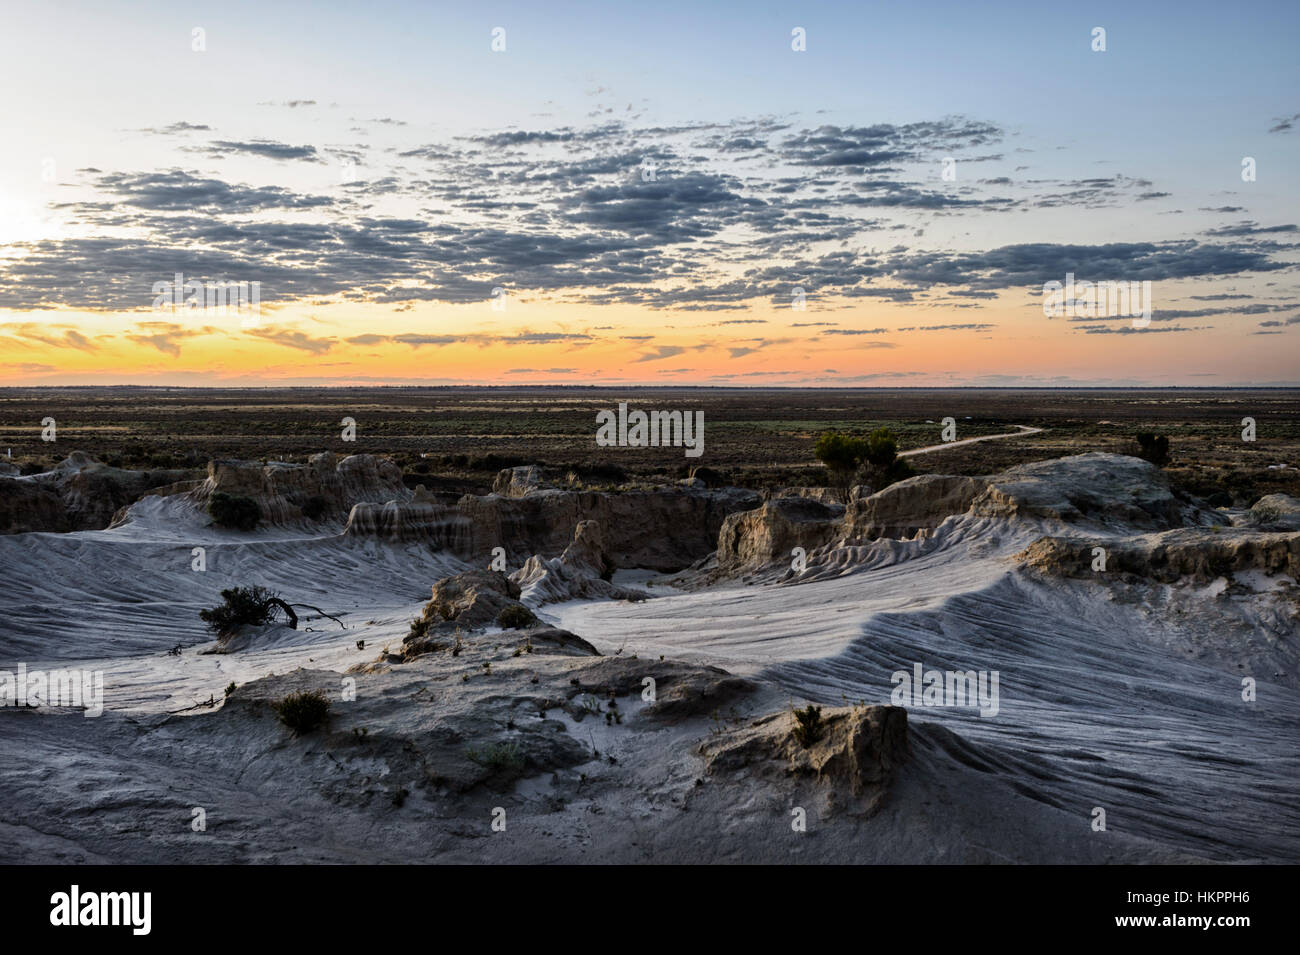 Sunset over the spectacular eroded rock formations of the Lunette, Mungo National Park, New South Wales, Australia - Stock Image